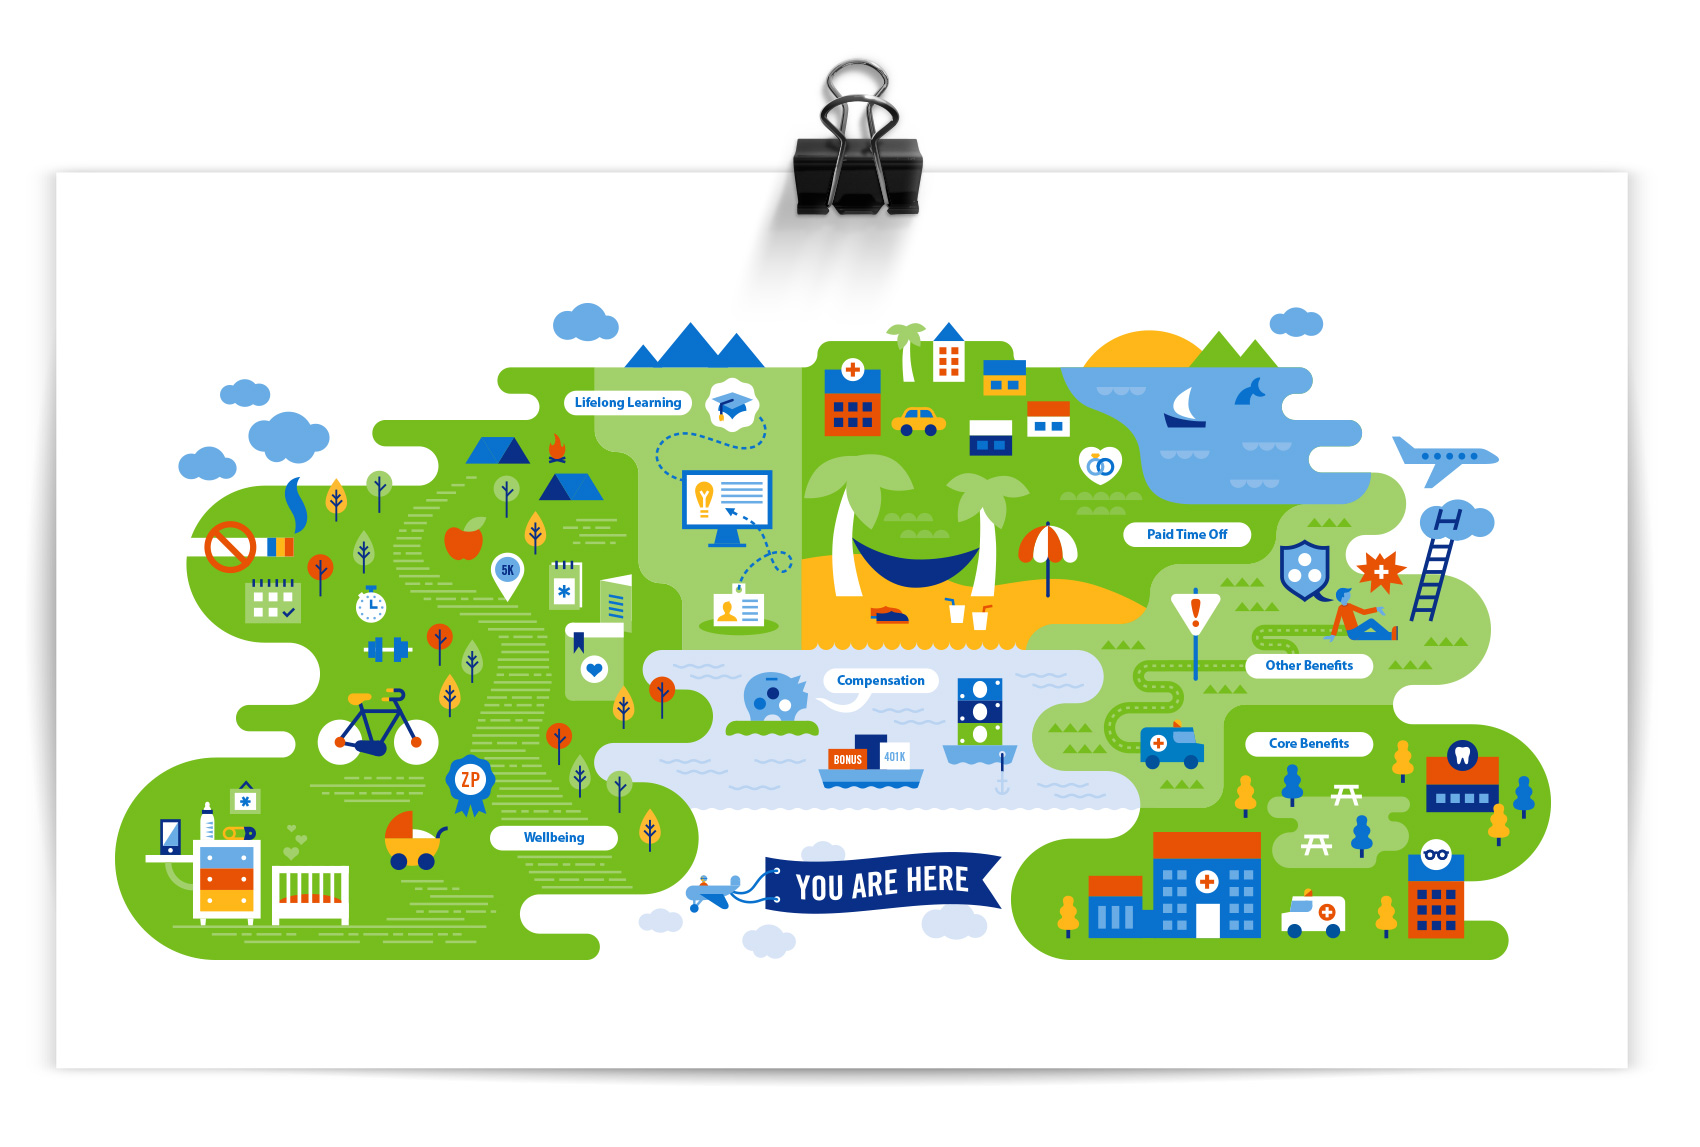 illustrated infographic of the Walmart annual enrollment benefits landscape